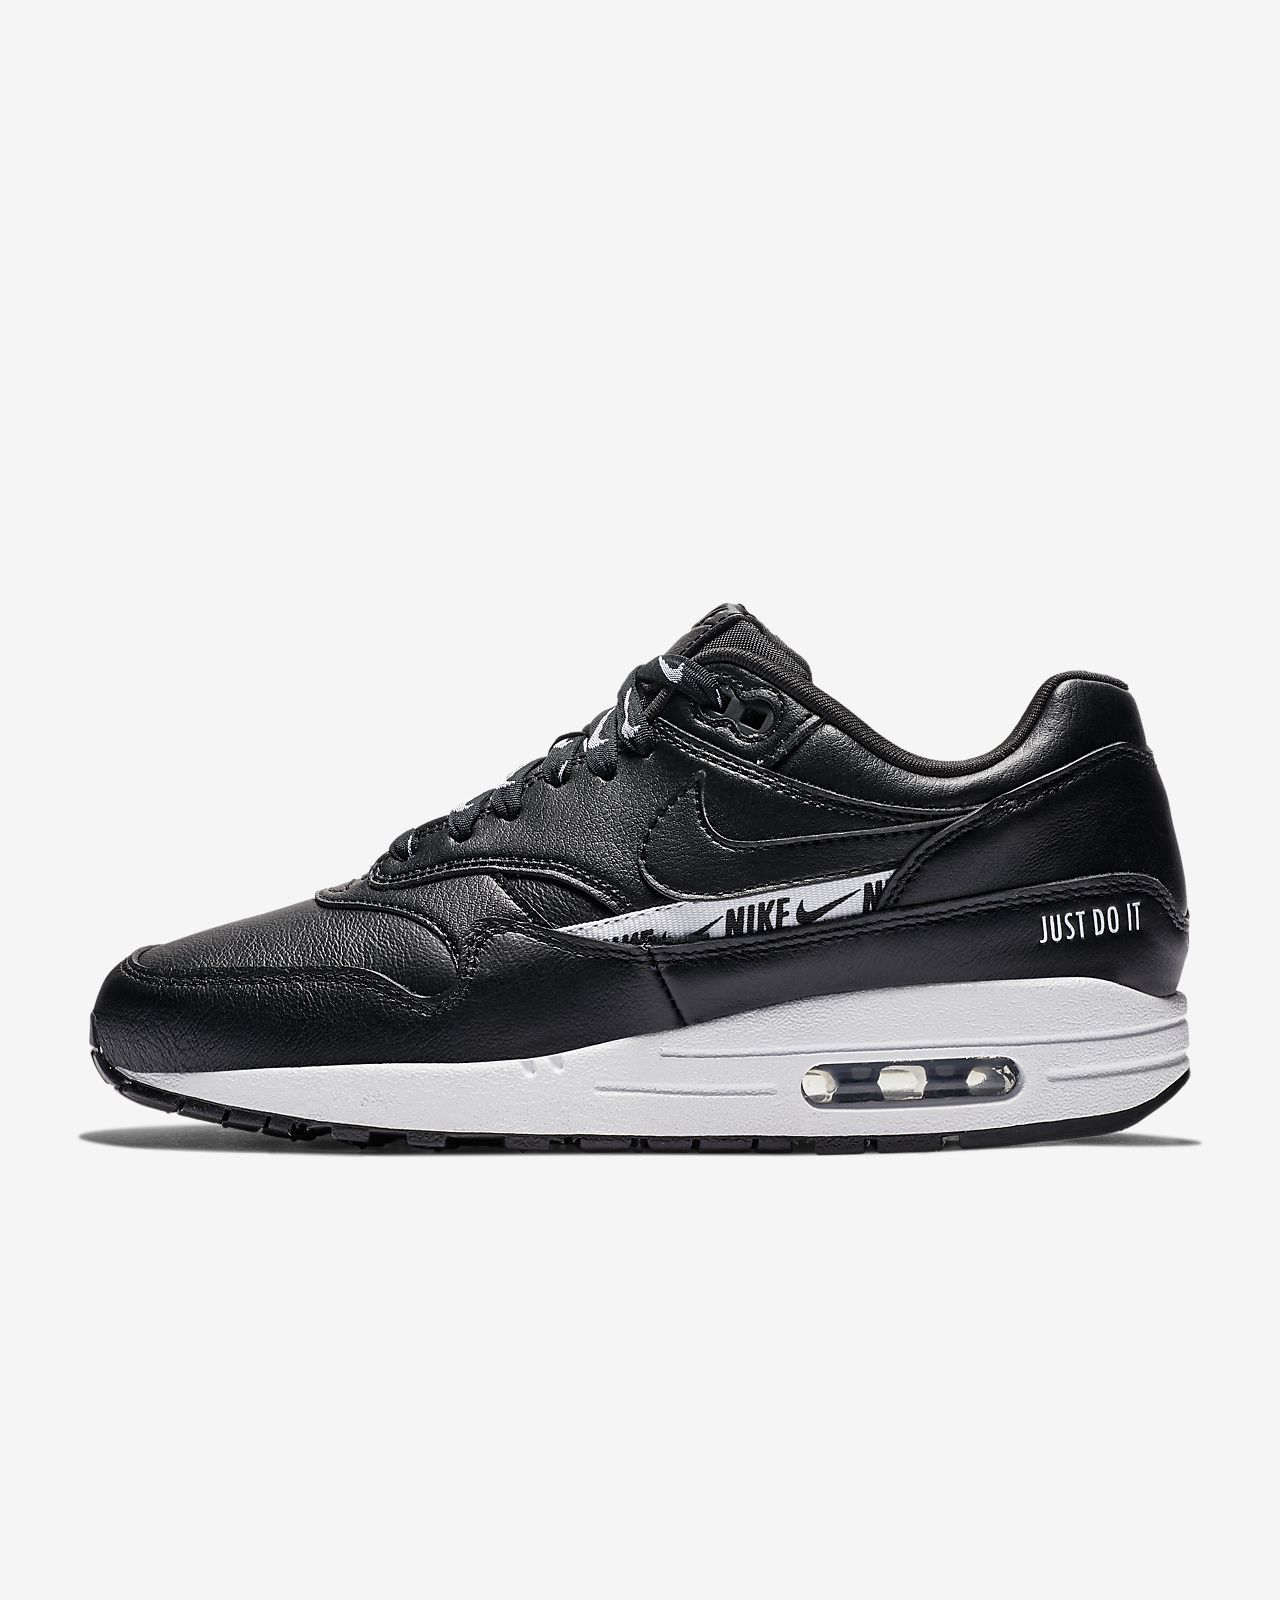 reputable site 7e747 72192 ... Nike Air Max 1 SE Overbranded Women s Shoe